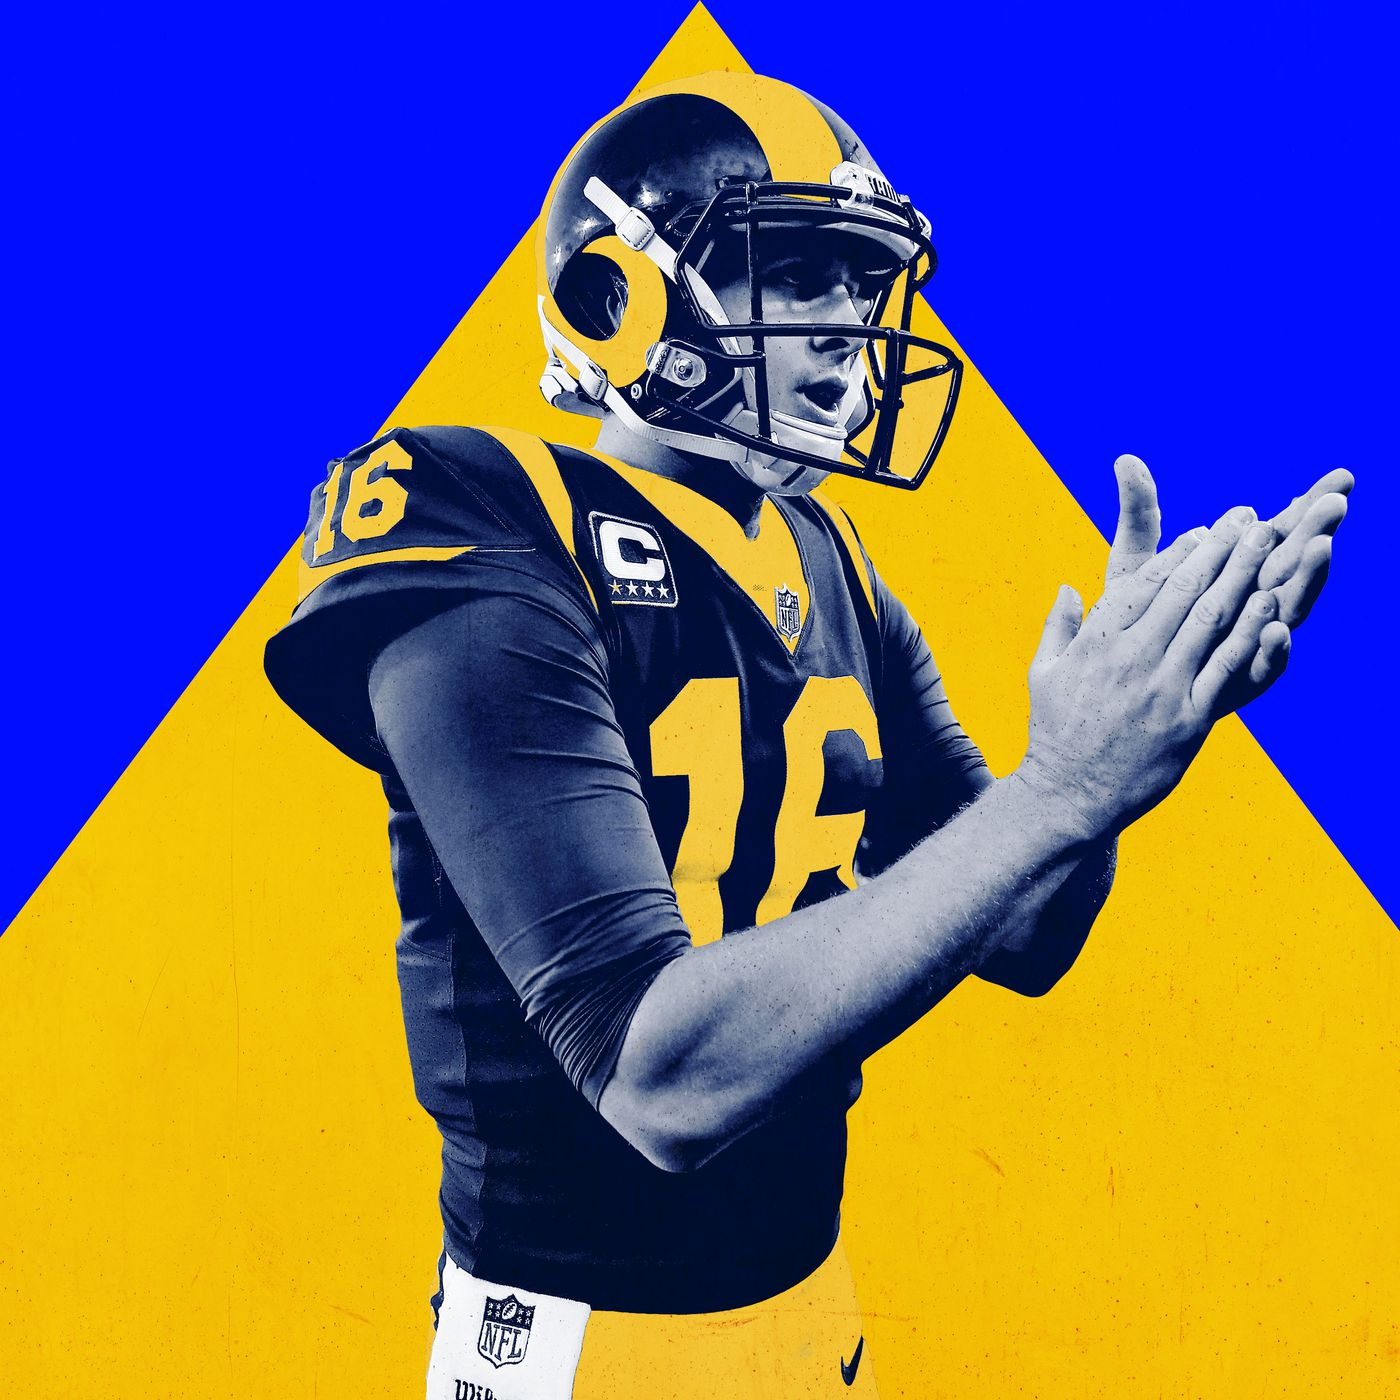 Is Jared Goff a System Quarterback? - The Ringer